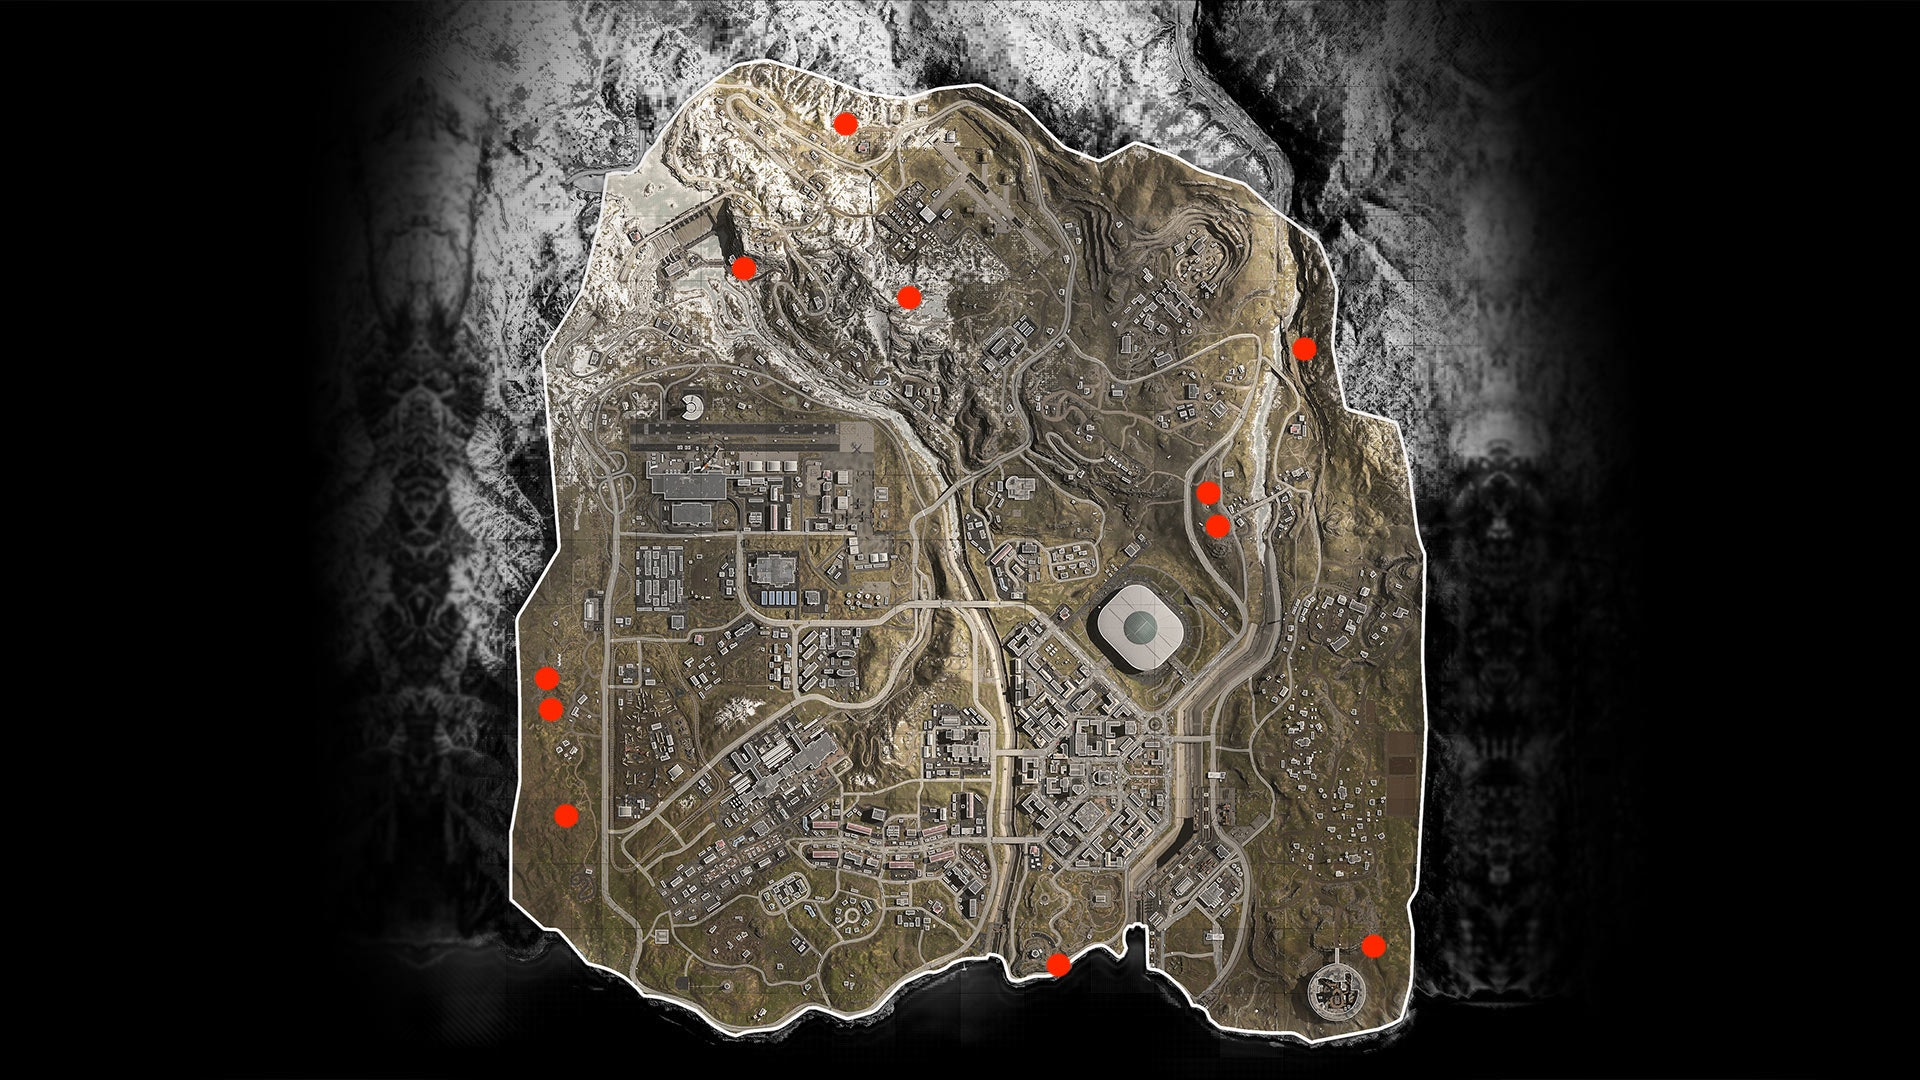 Warzone Bunker Locations How To Open All 11 With Red Access Cards